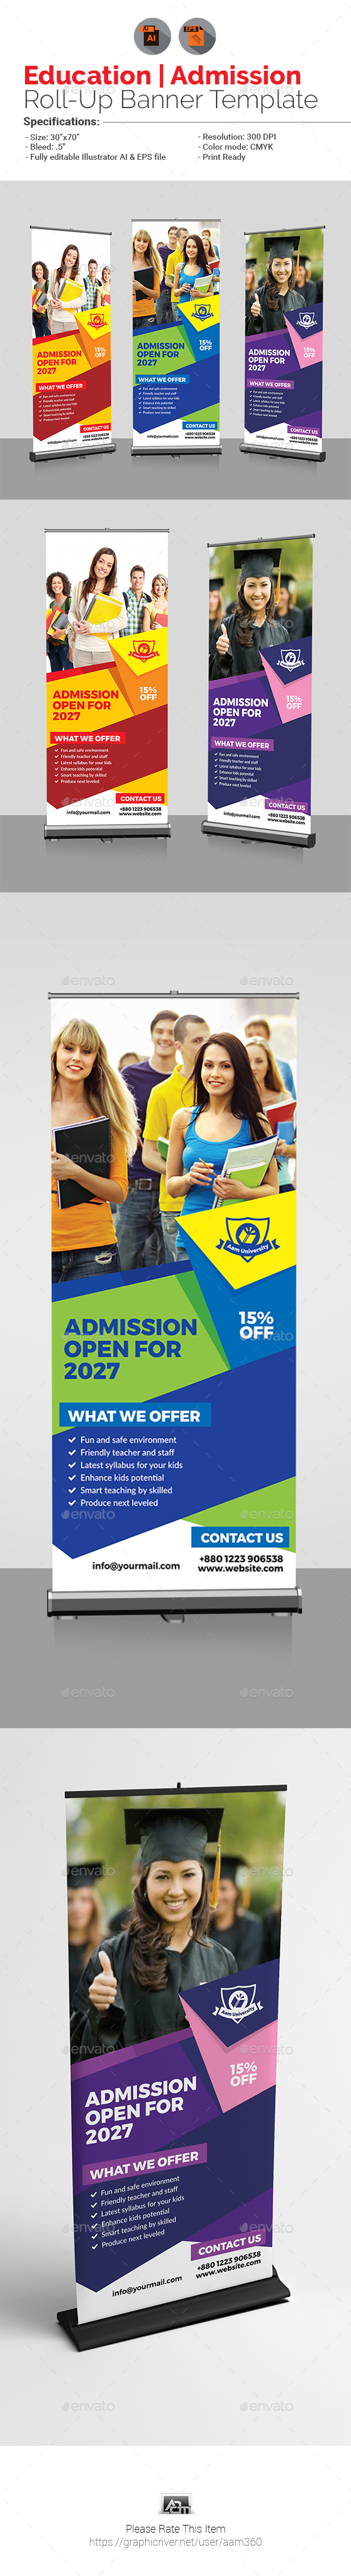 Education | Admission Roll Up Banner Template - Signage Print Templates